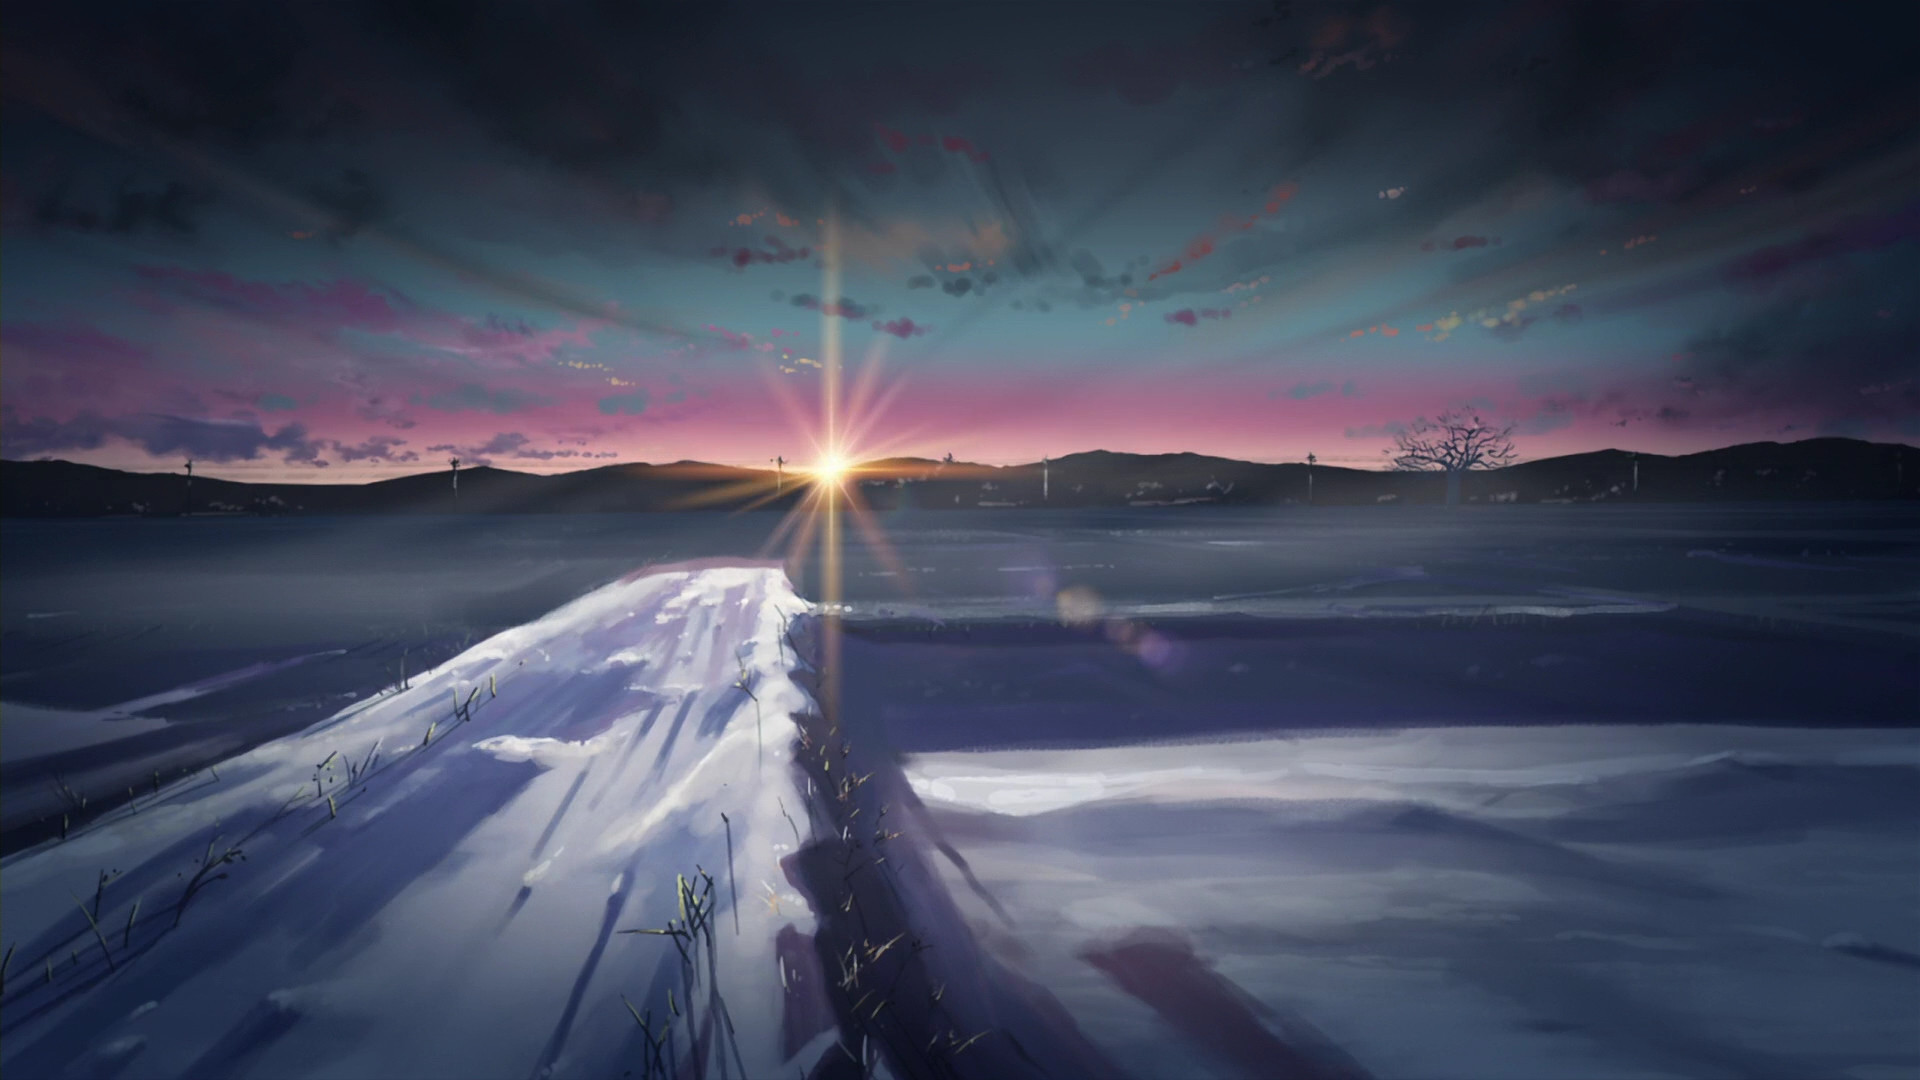 1920x1080 5 Centimeters per Second